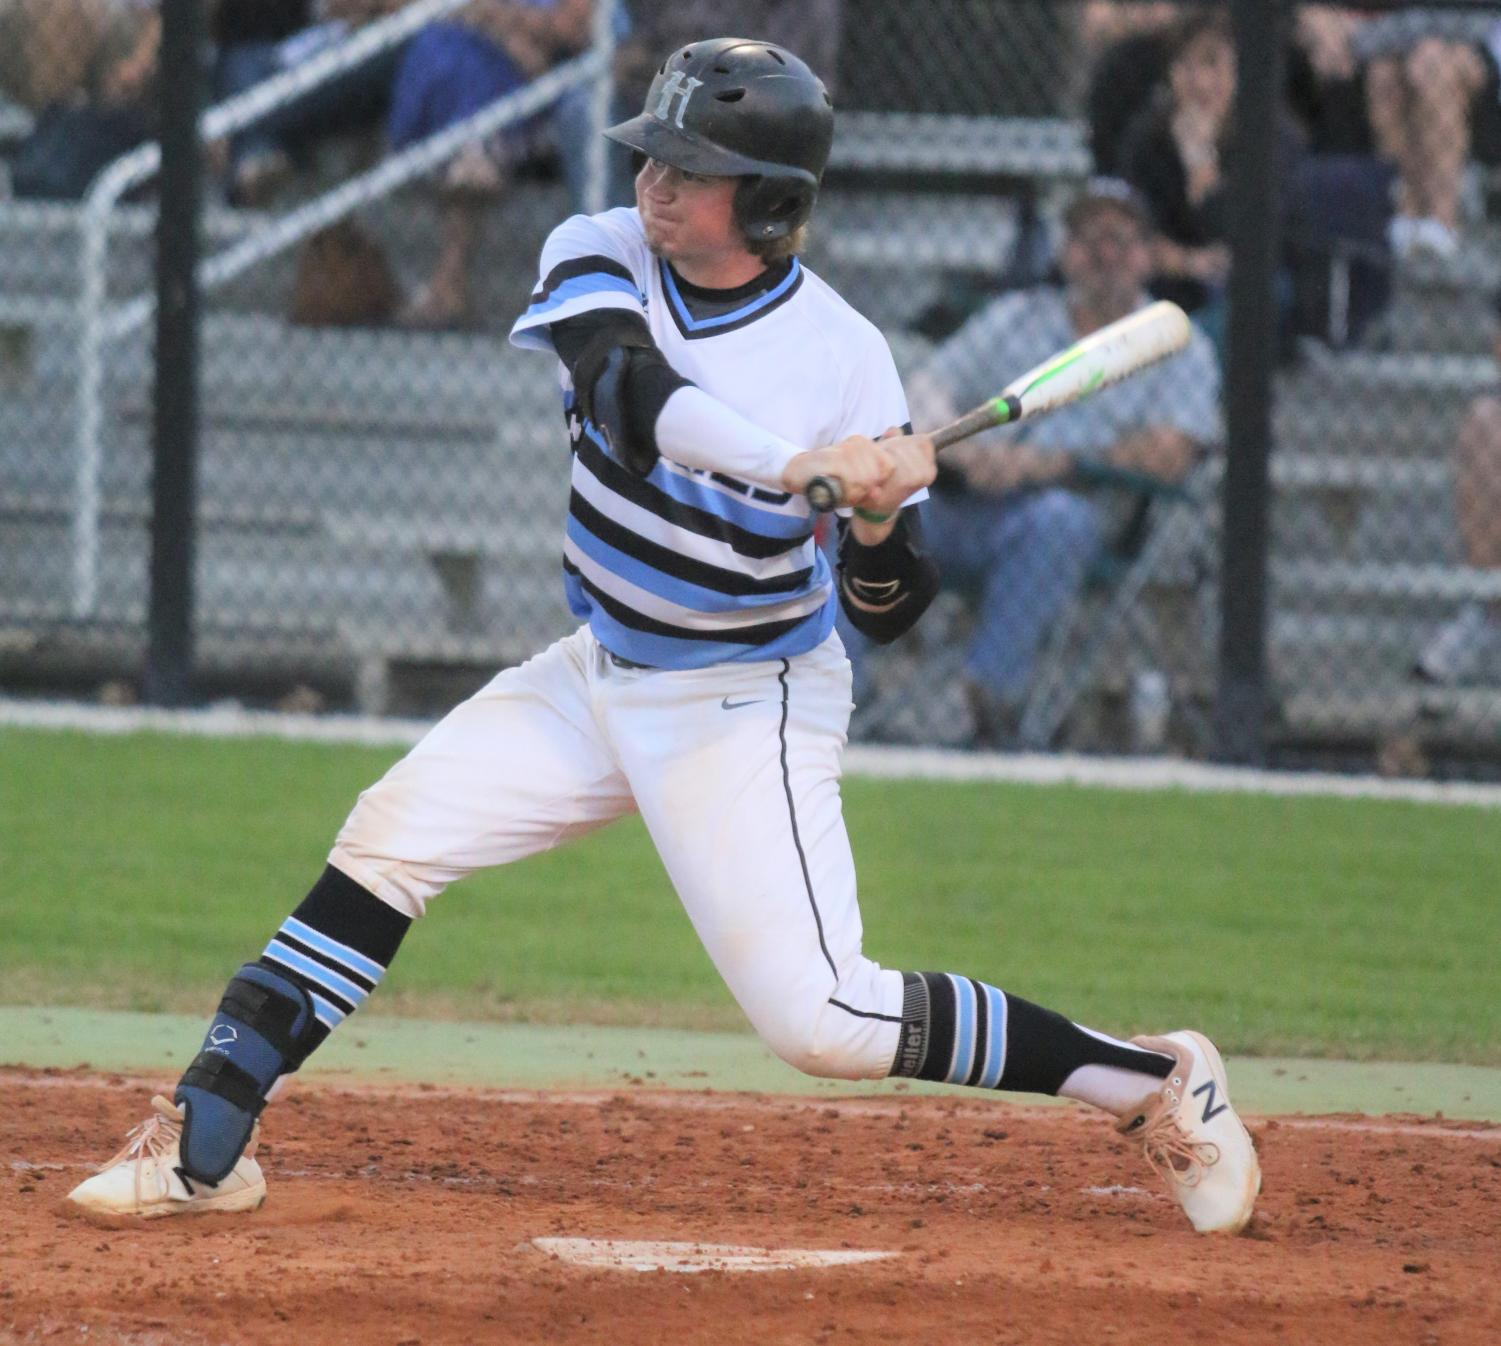 Catcher Robby Post takes a swing at a pitch during the team's home game against Lake Howell on April 4. The team went on to win the game, 9-5.